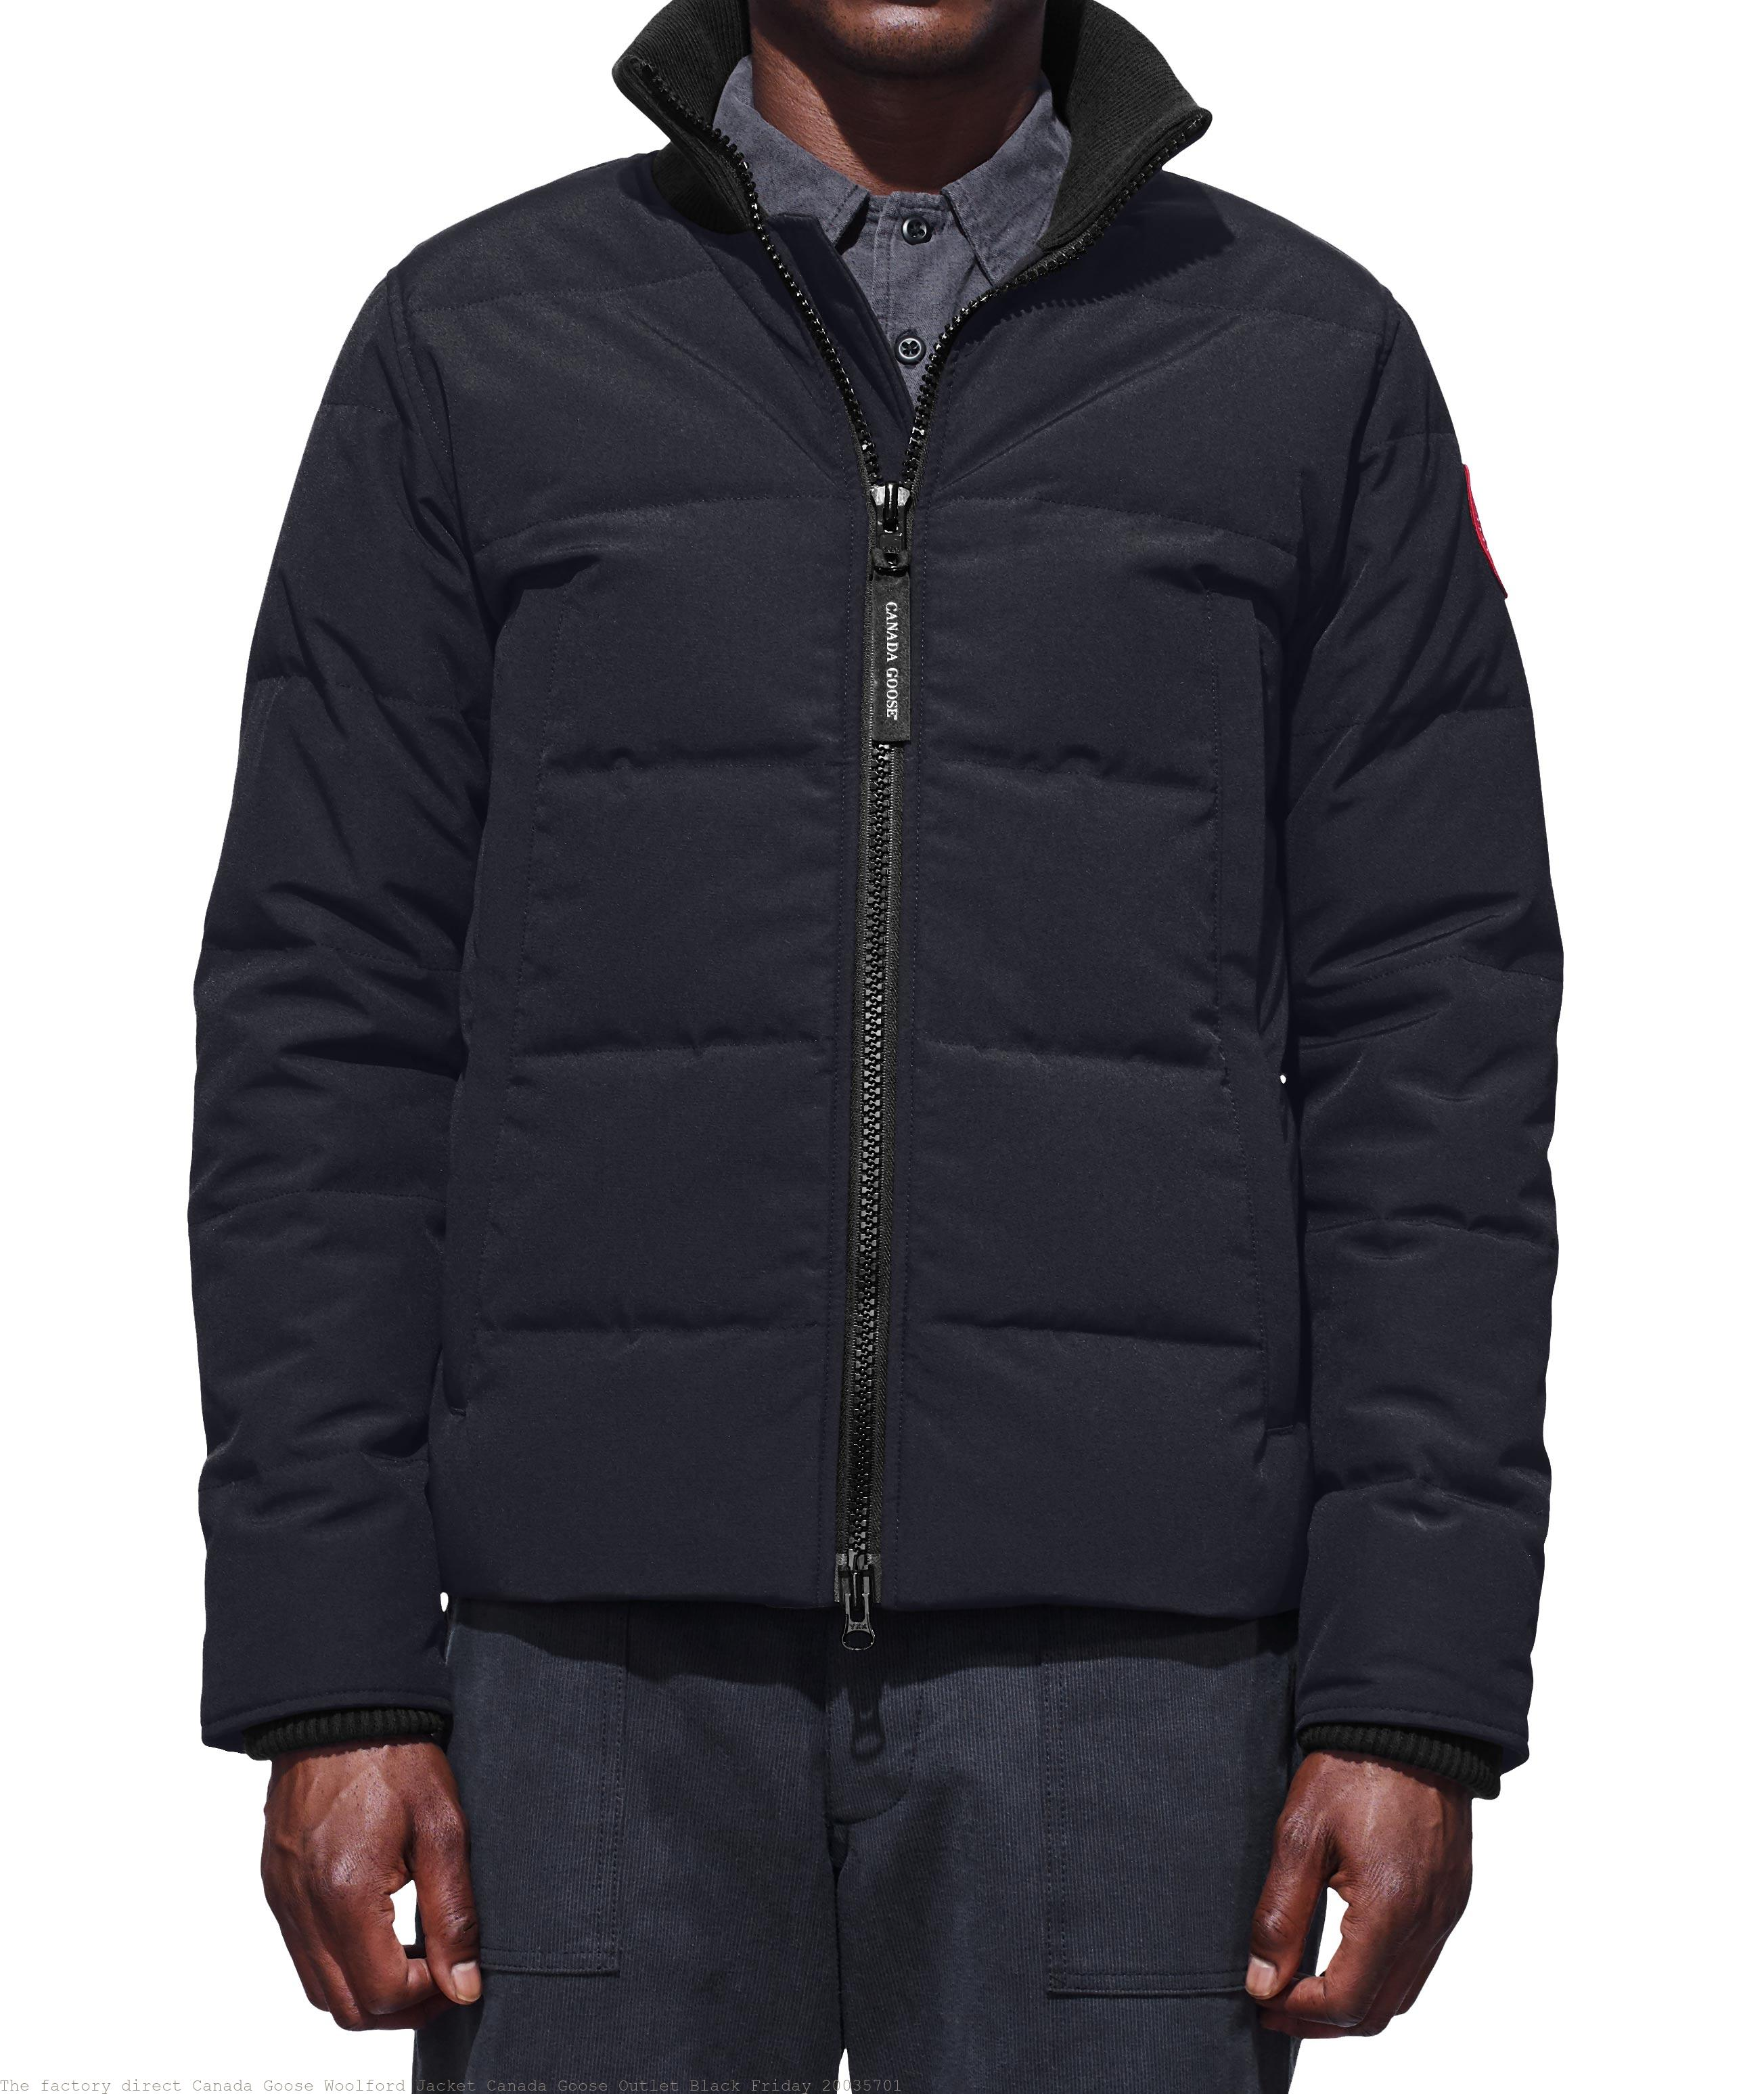 The factory direct Canada Goose Woolford Jacket Canada Goose Outlet Black  Friday 20035701 a94f8d3b2